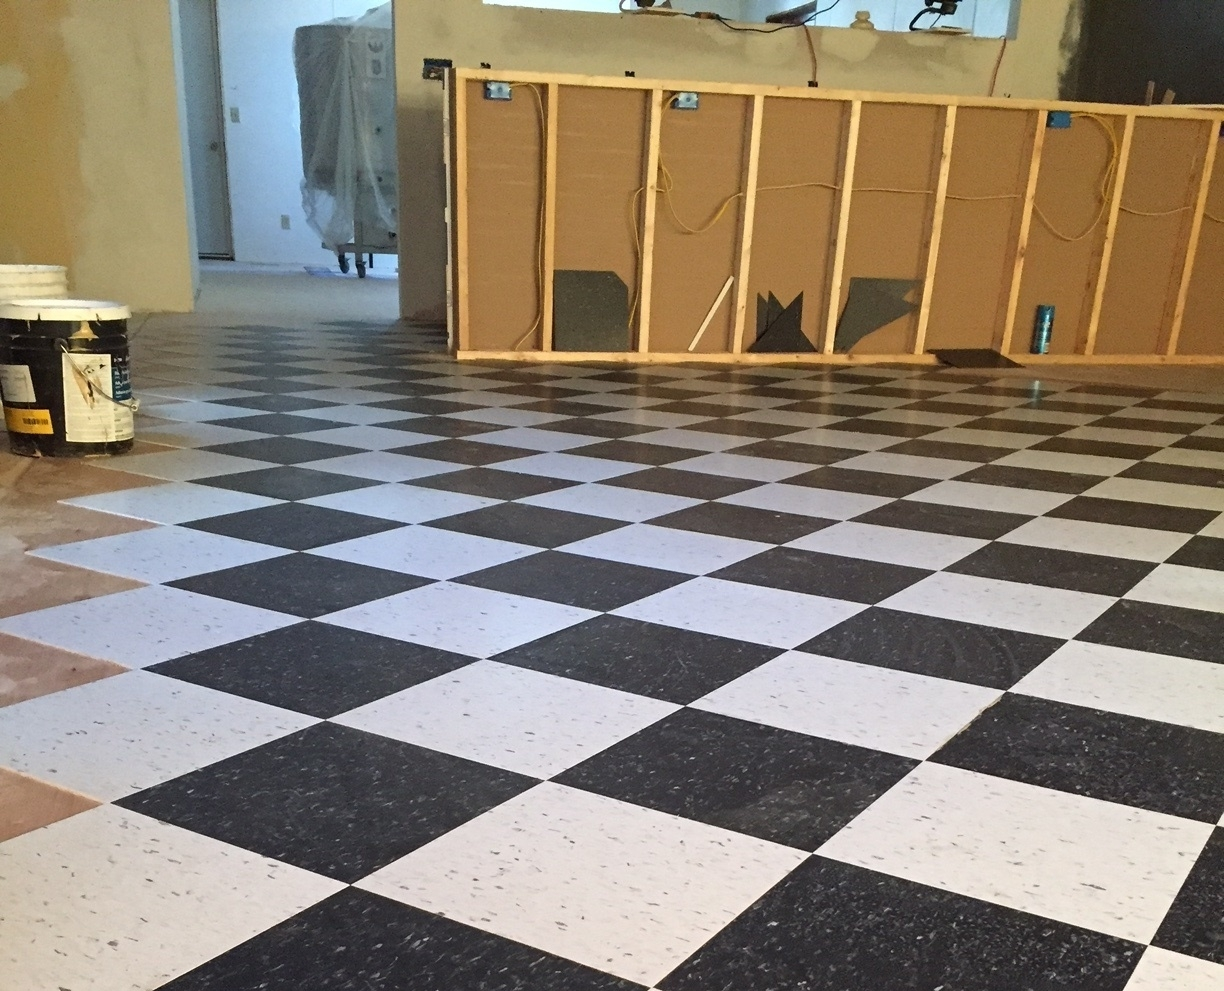 We decided to go with black and white tile and had Hardy Builders install it (in a diamond pattern of course!)